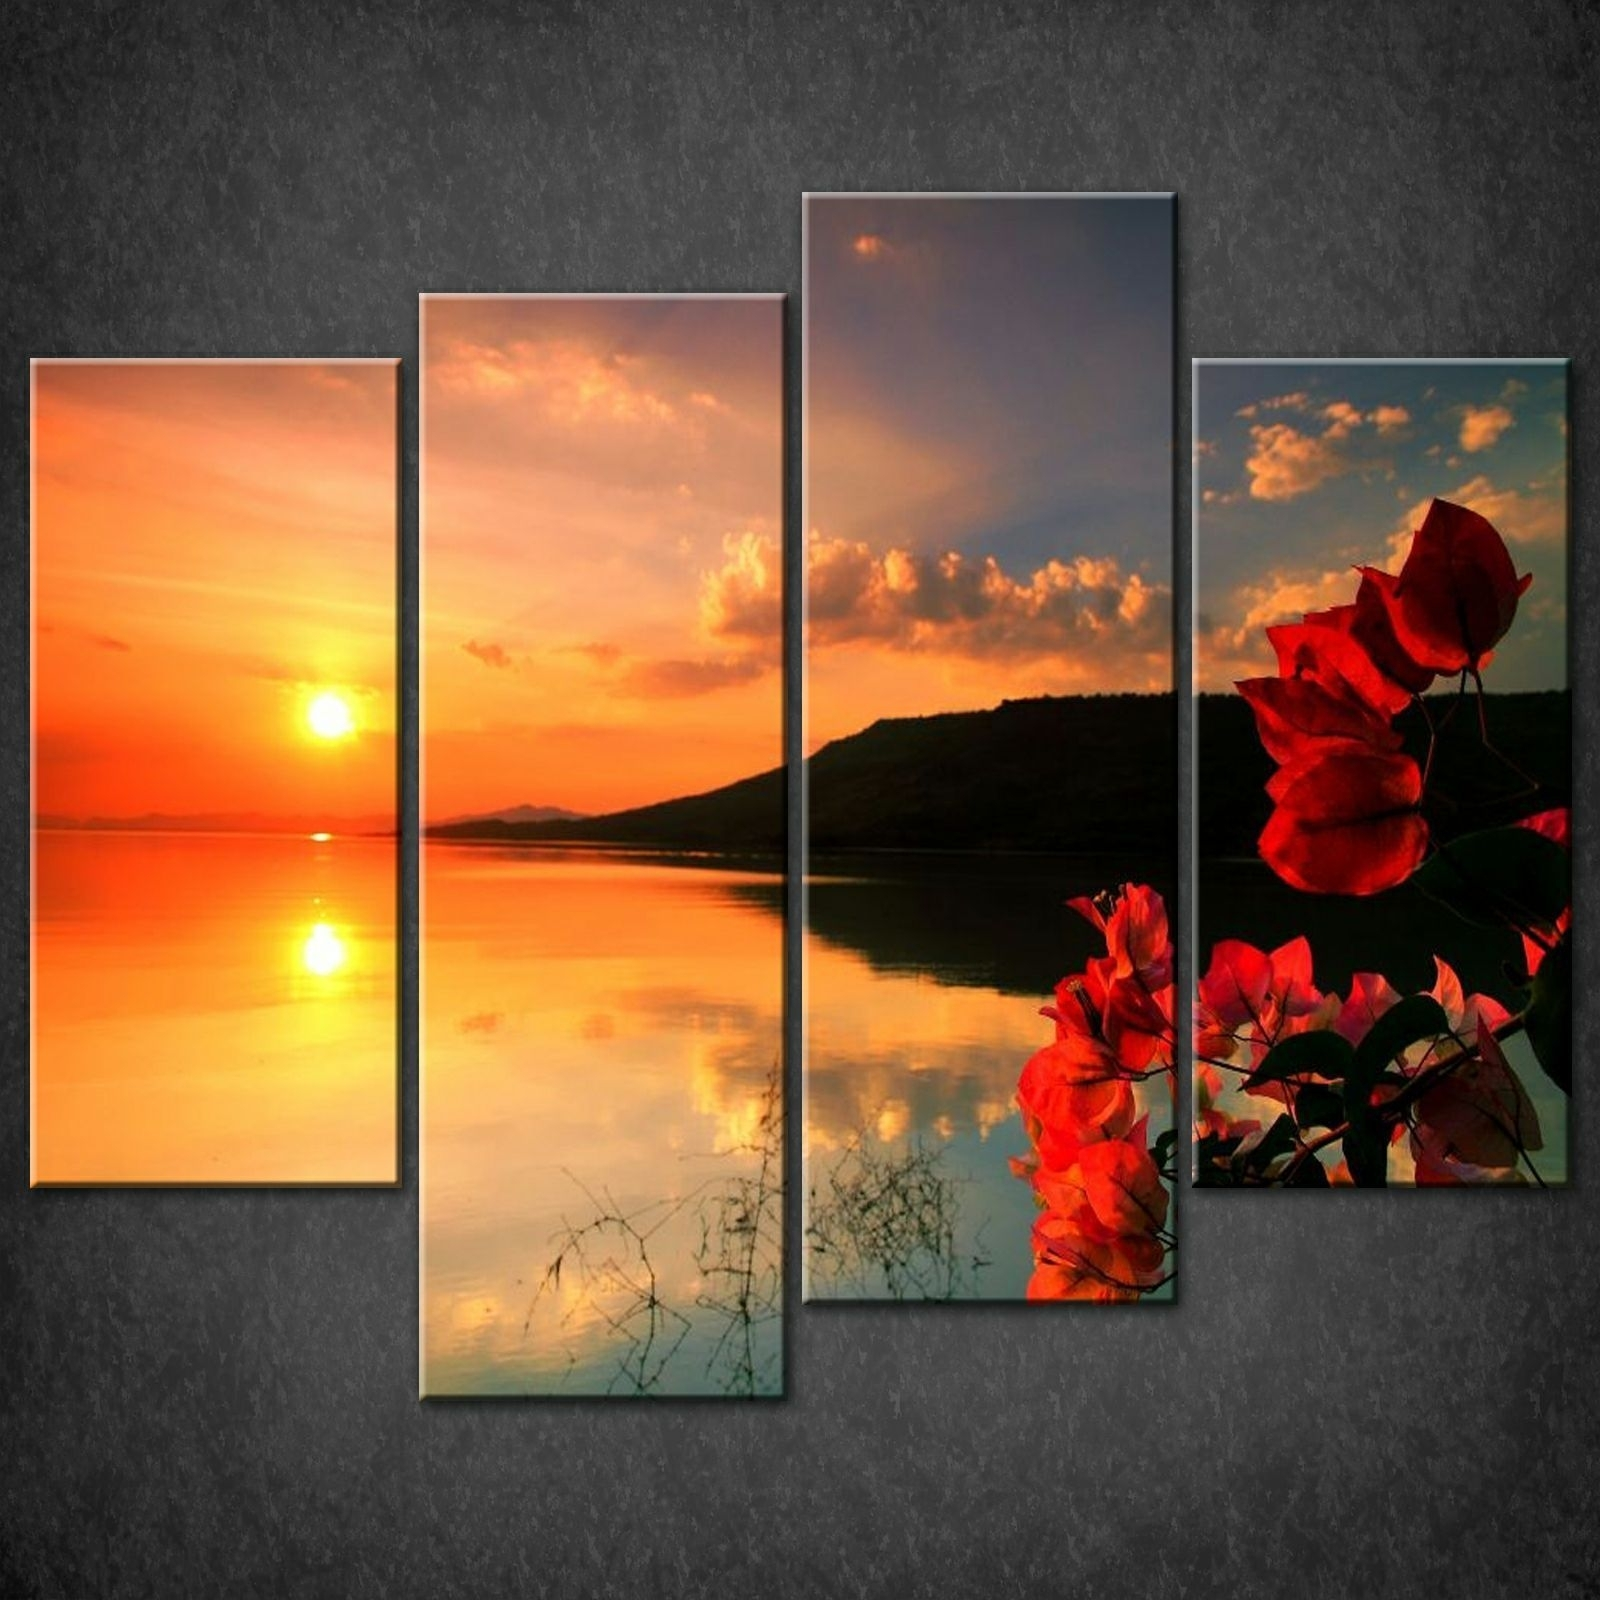 Amazing Wall Art Canvas Prints Con Fine Site In Most Popular Framed Canvas Art Prints (View 2 of 15)